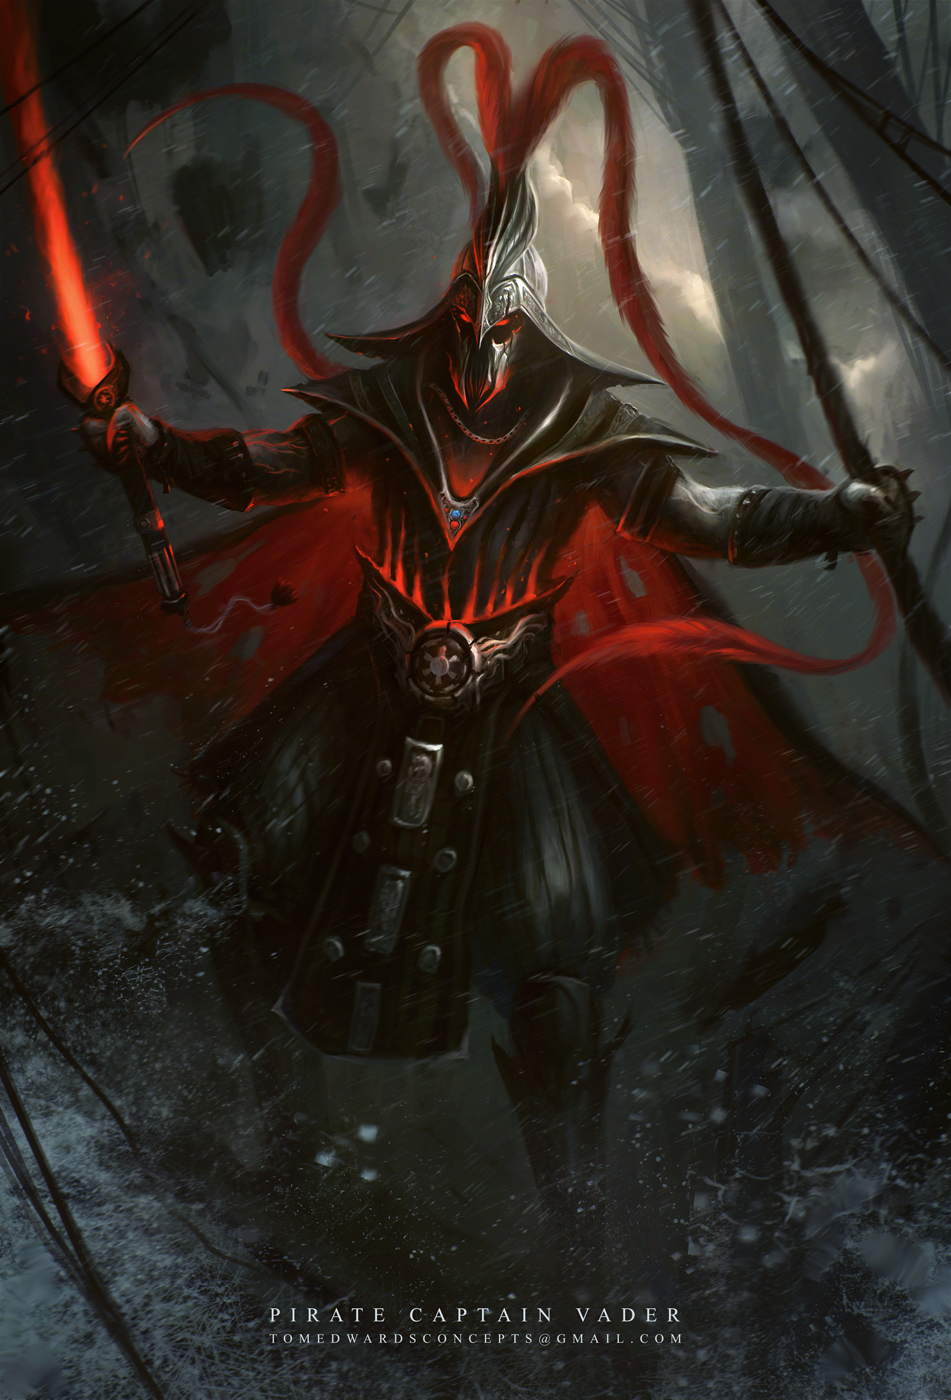 Pirate Lord Vader by TomEdwardsConcepts